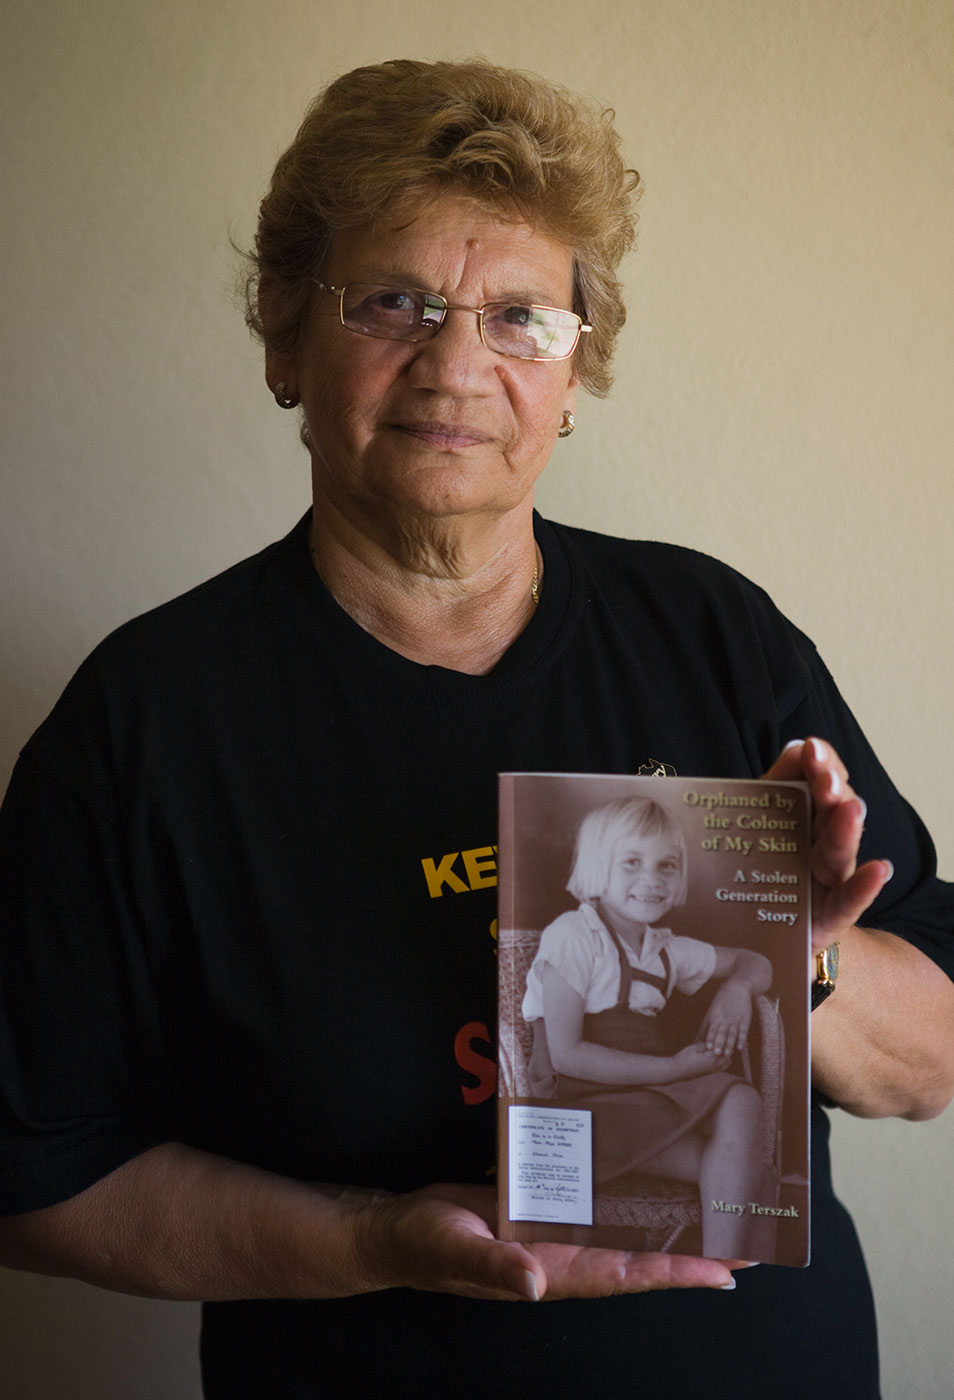 Colour photograph showing a woman holding a book in both hands. The book cover shows a photo of the woman as a young girl. - click to view larger image